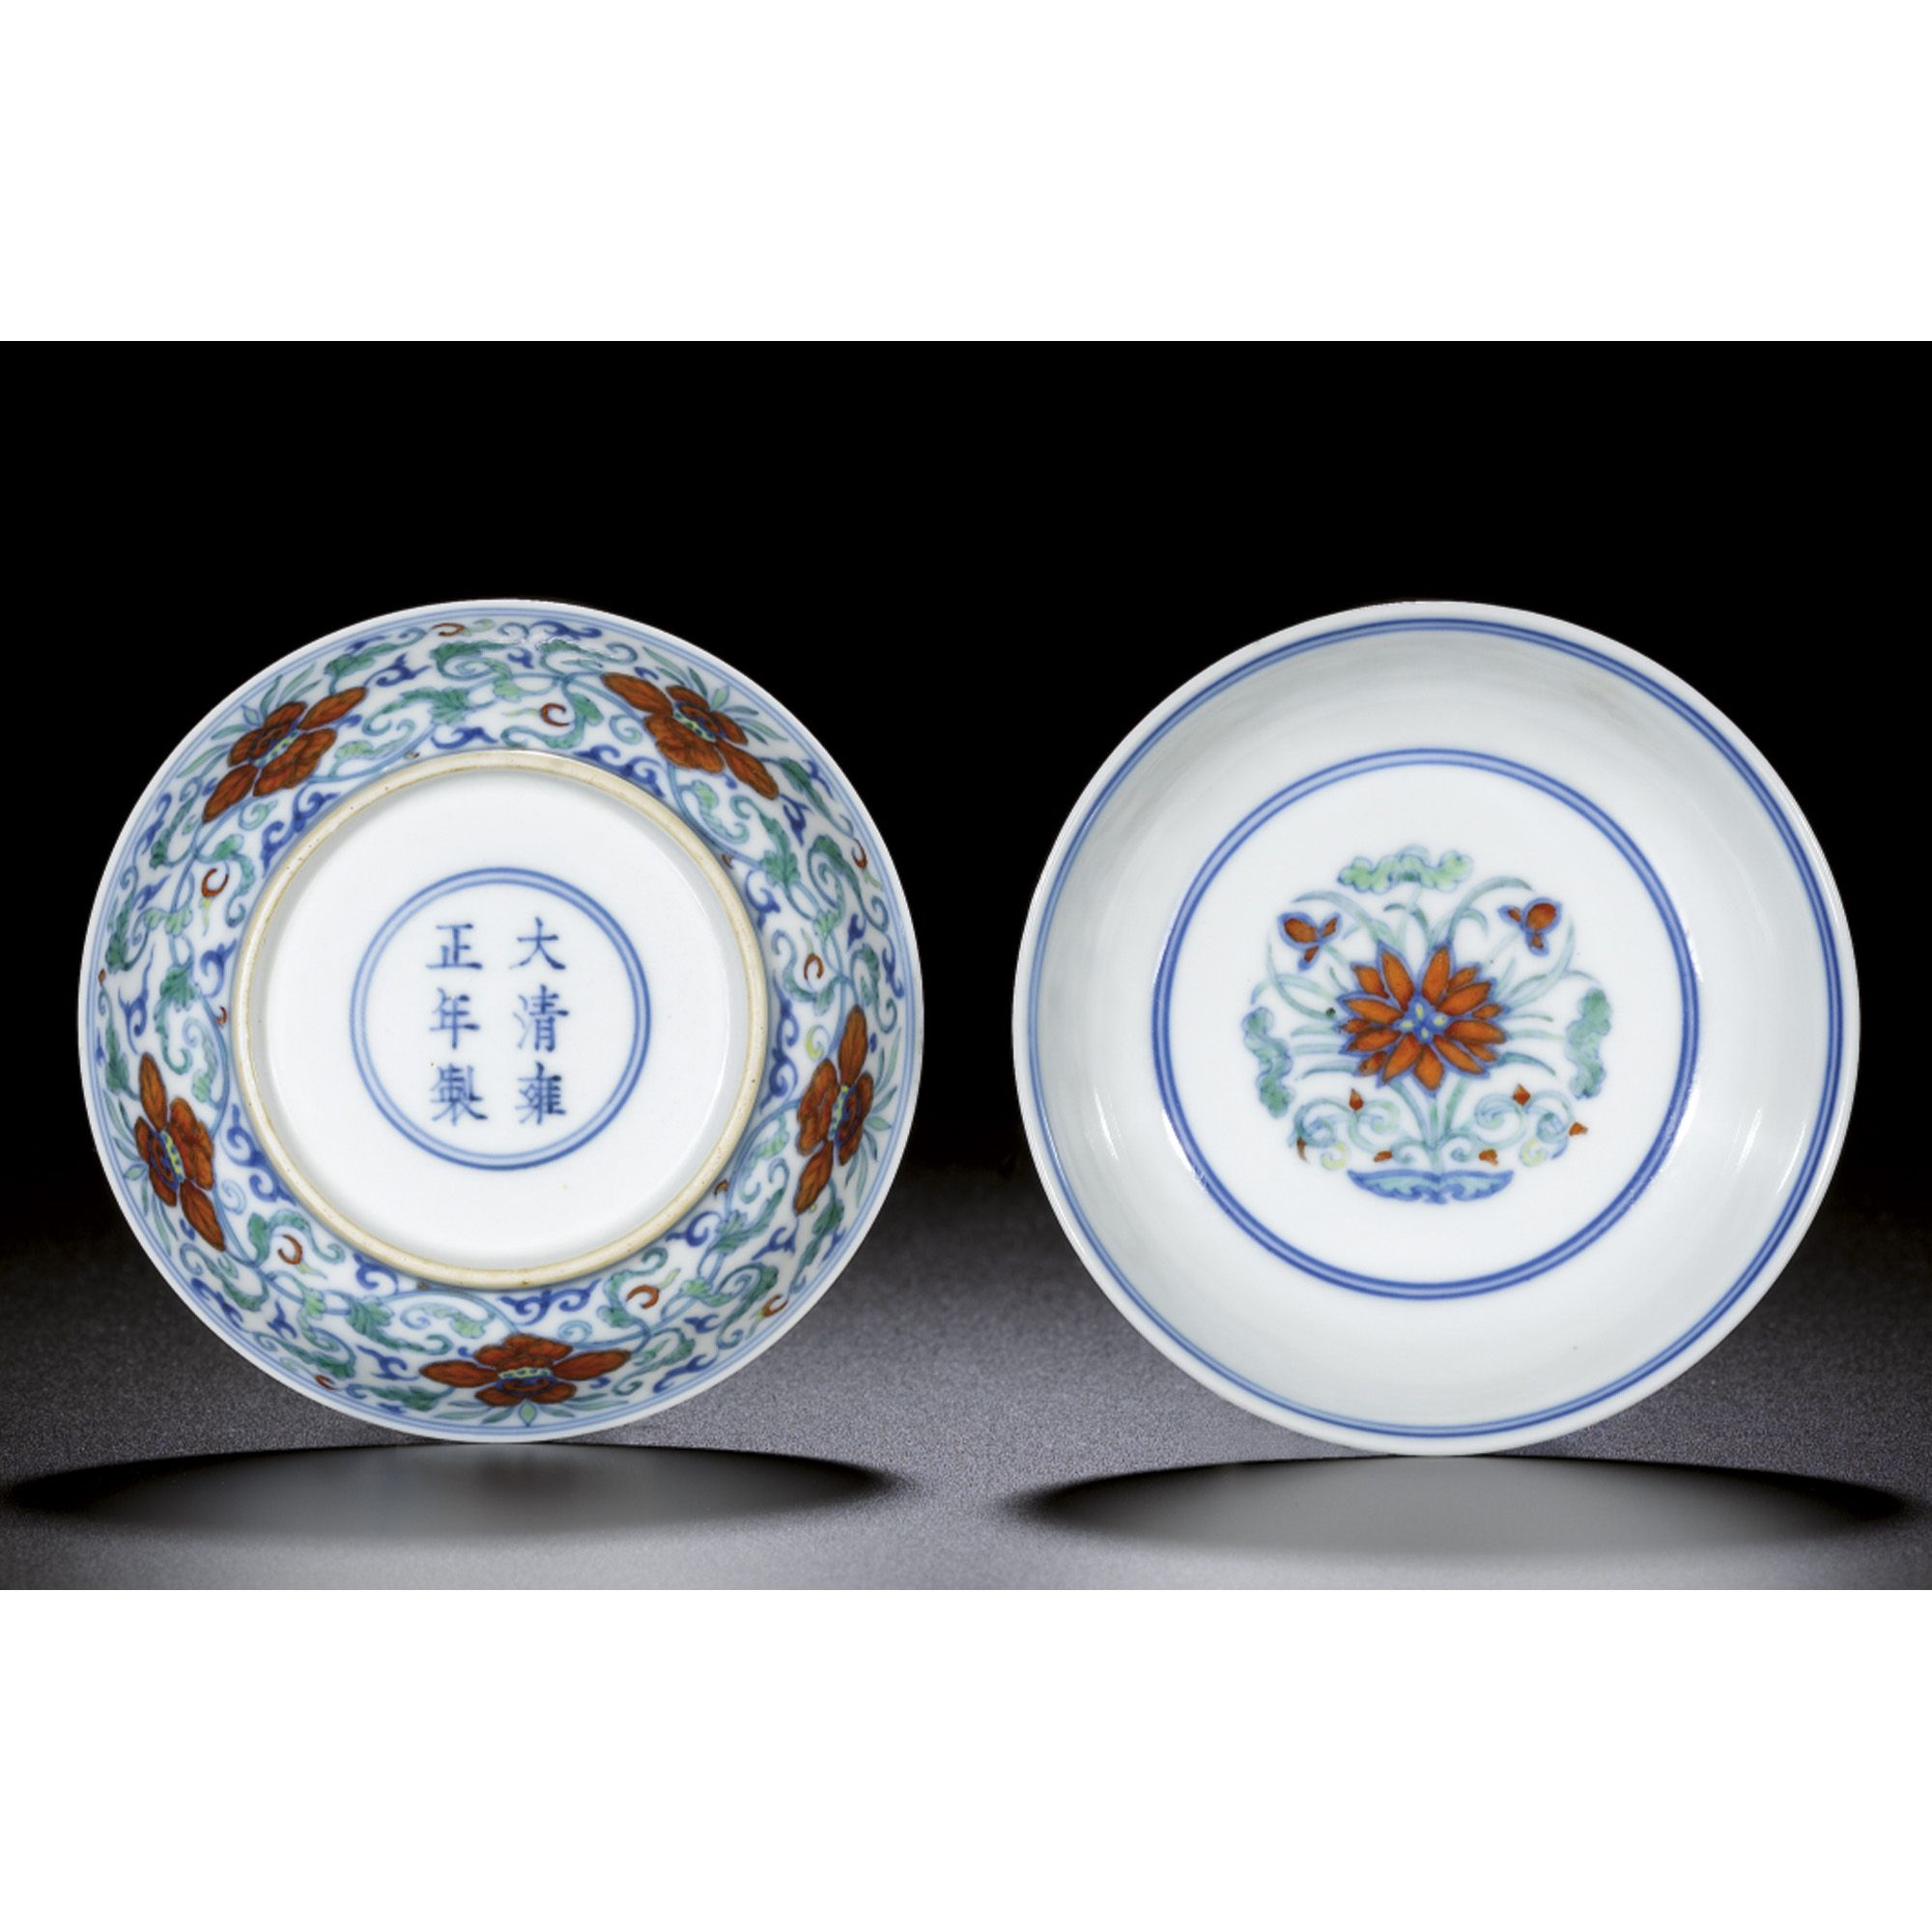 A Fine Pair Of Doucai Saucer Dishes China Marks And Period Of Yongzheng 1723 1735 Chinese Works Of Art Chinese Ceramics Porcelain Ceramics Fine Porcelain